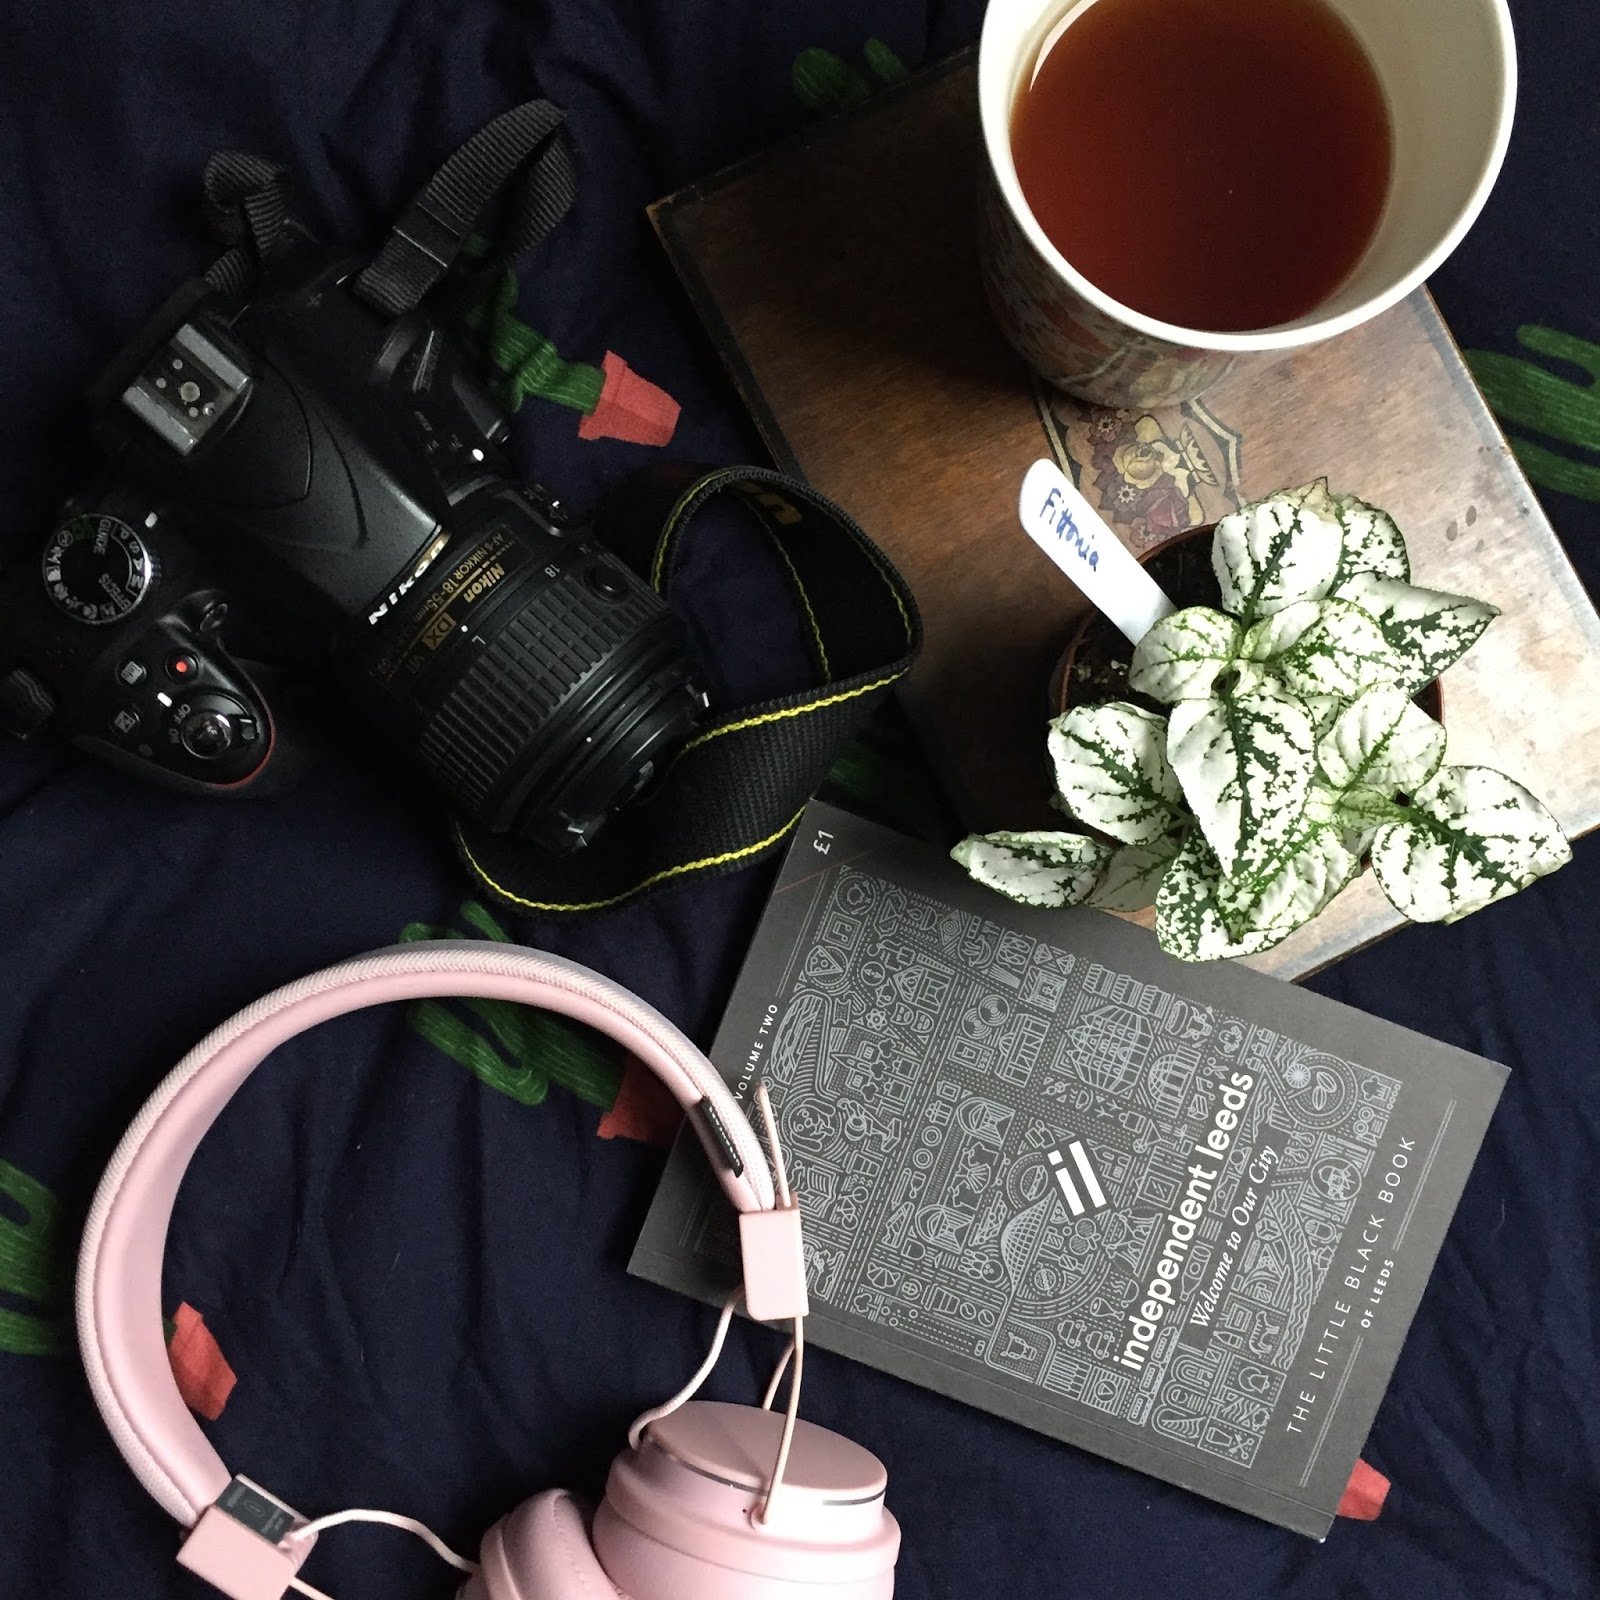 flatlay of plant, headphones, camera, book and a cup of tea